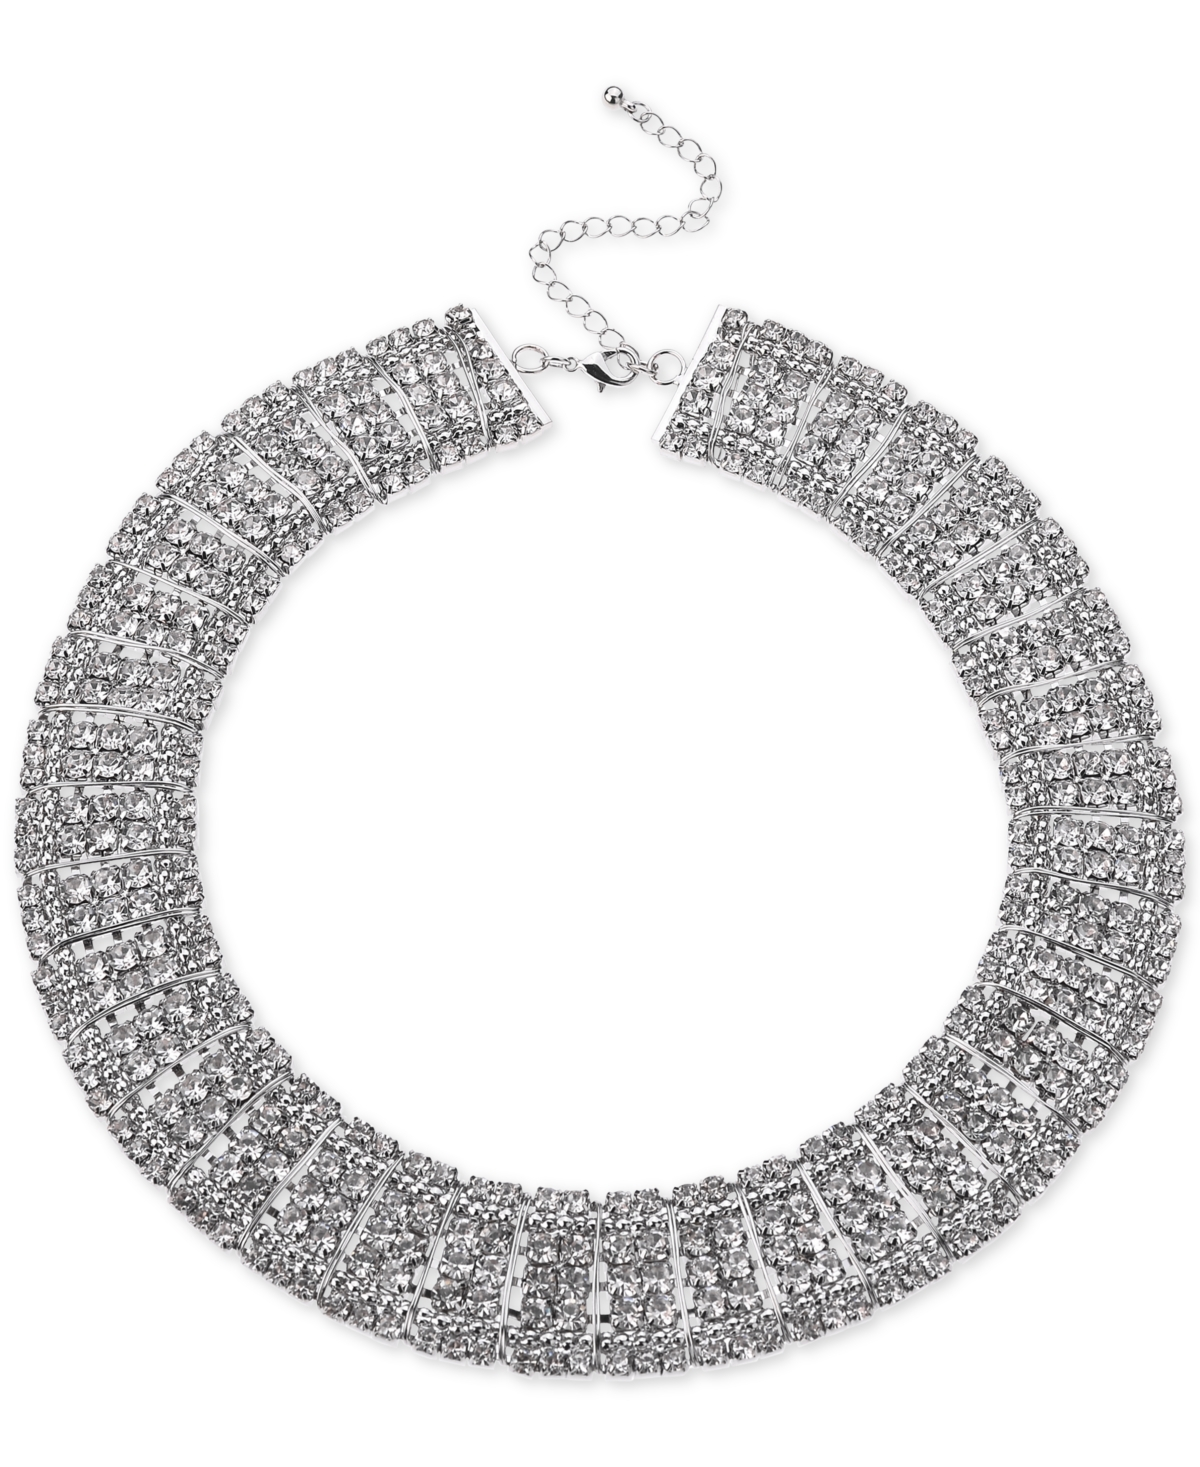 Inc International Concepts Silver-Tone Crystal Multi-Row Choker Necklace, 12-1/2